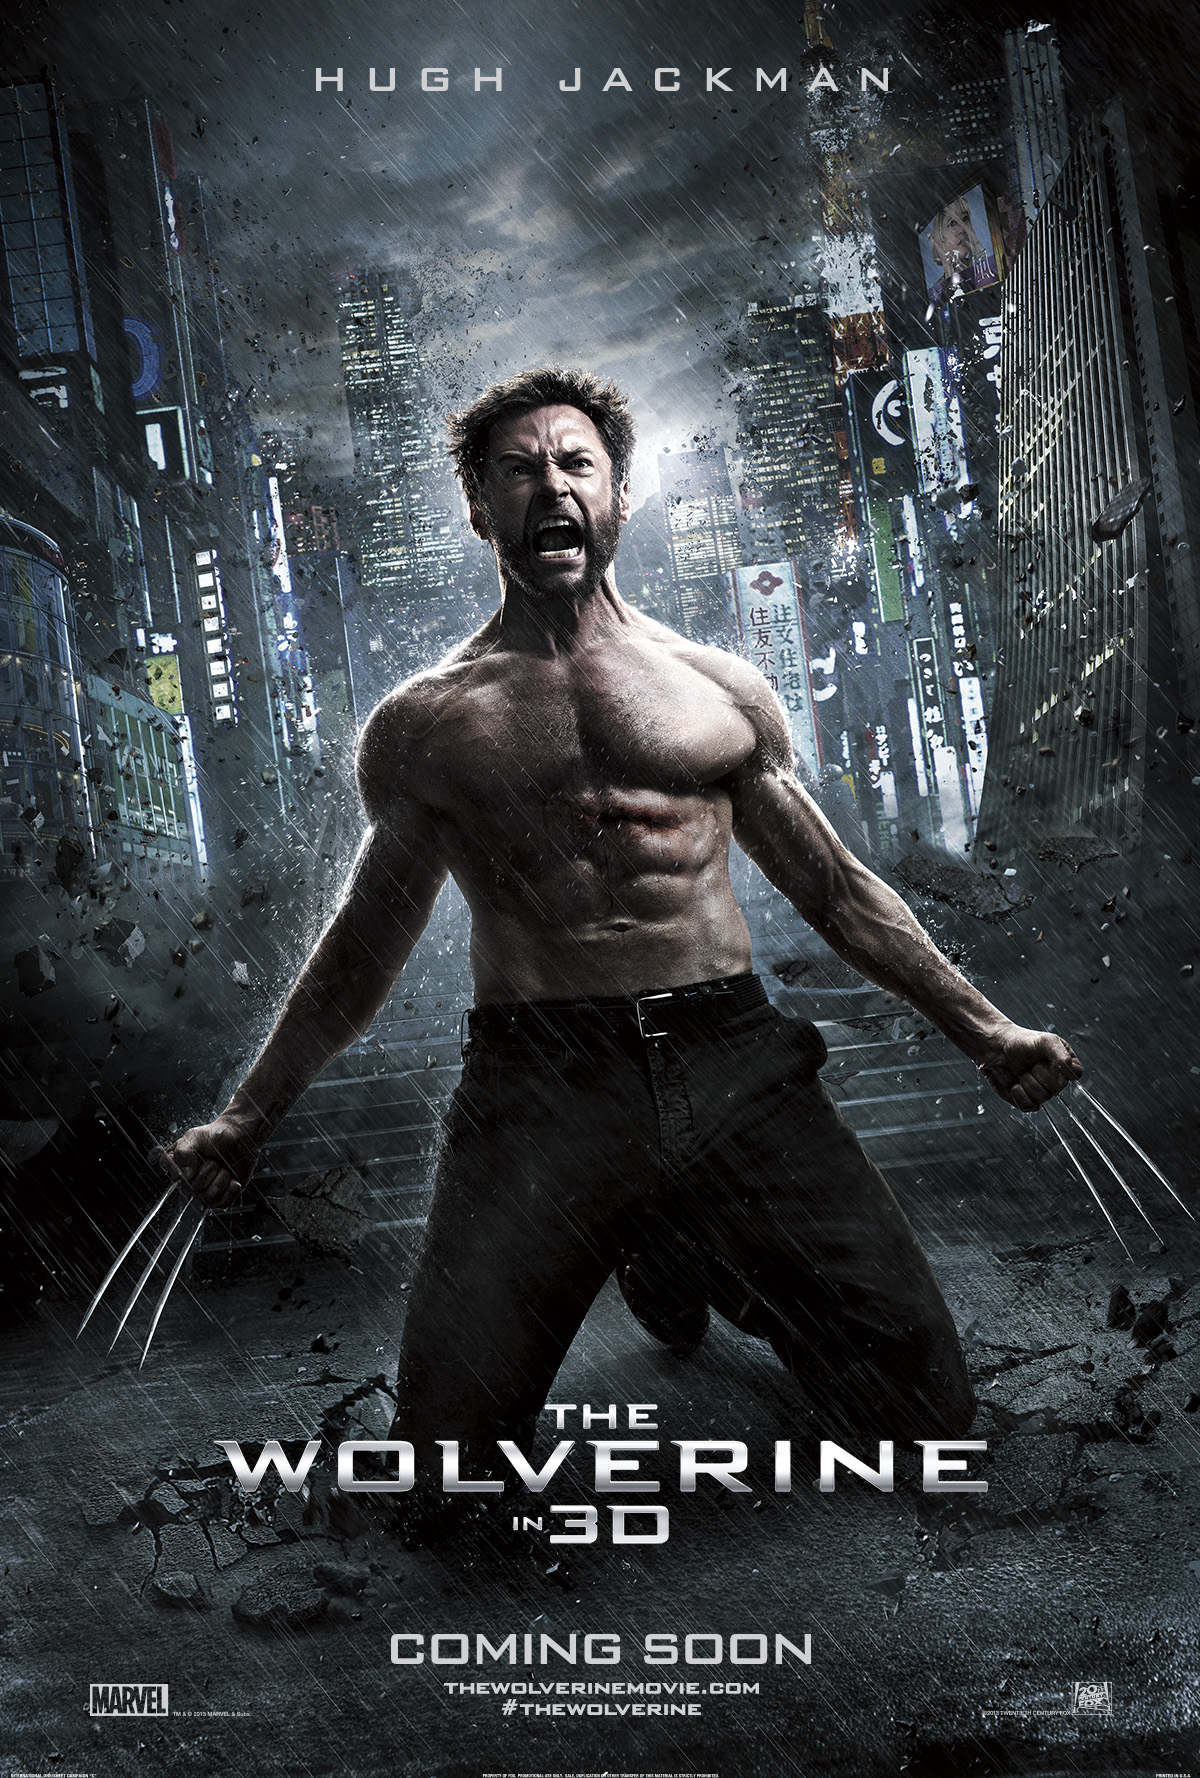 wolverine l'immortale, the wolverine poster